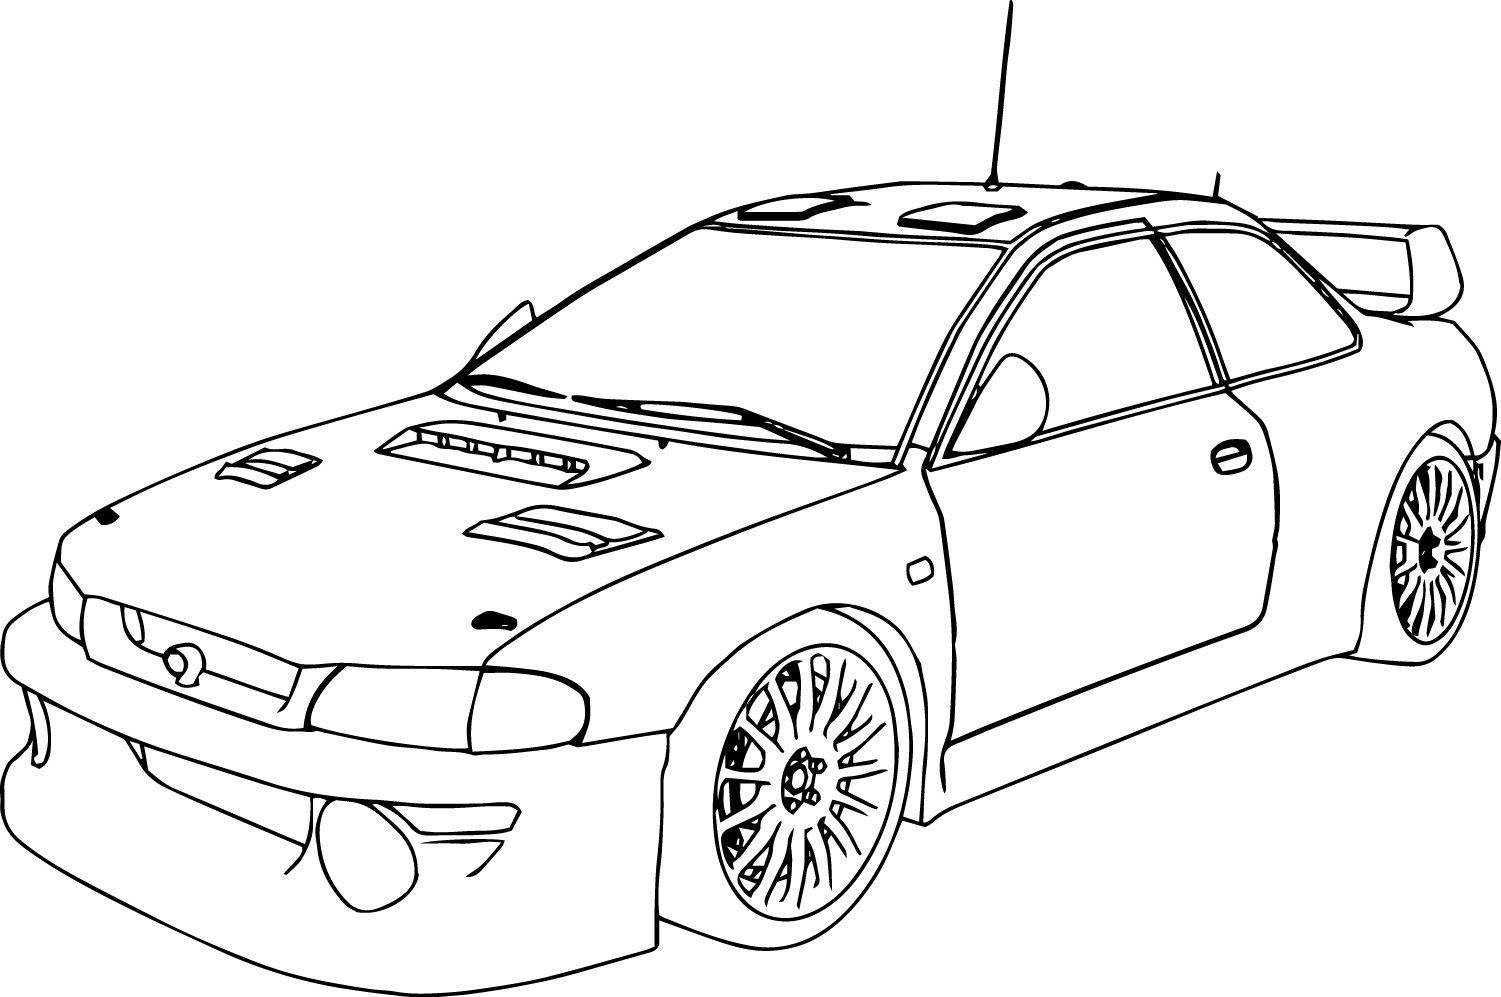 cars pictures to colour cool and fun race car coloring pages 101 coloring colour to pictures cars